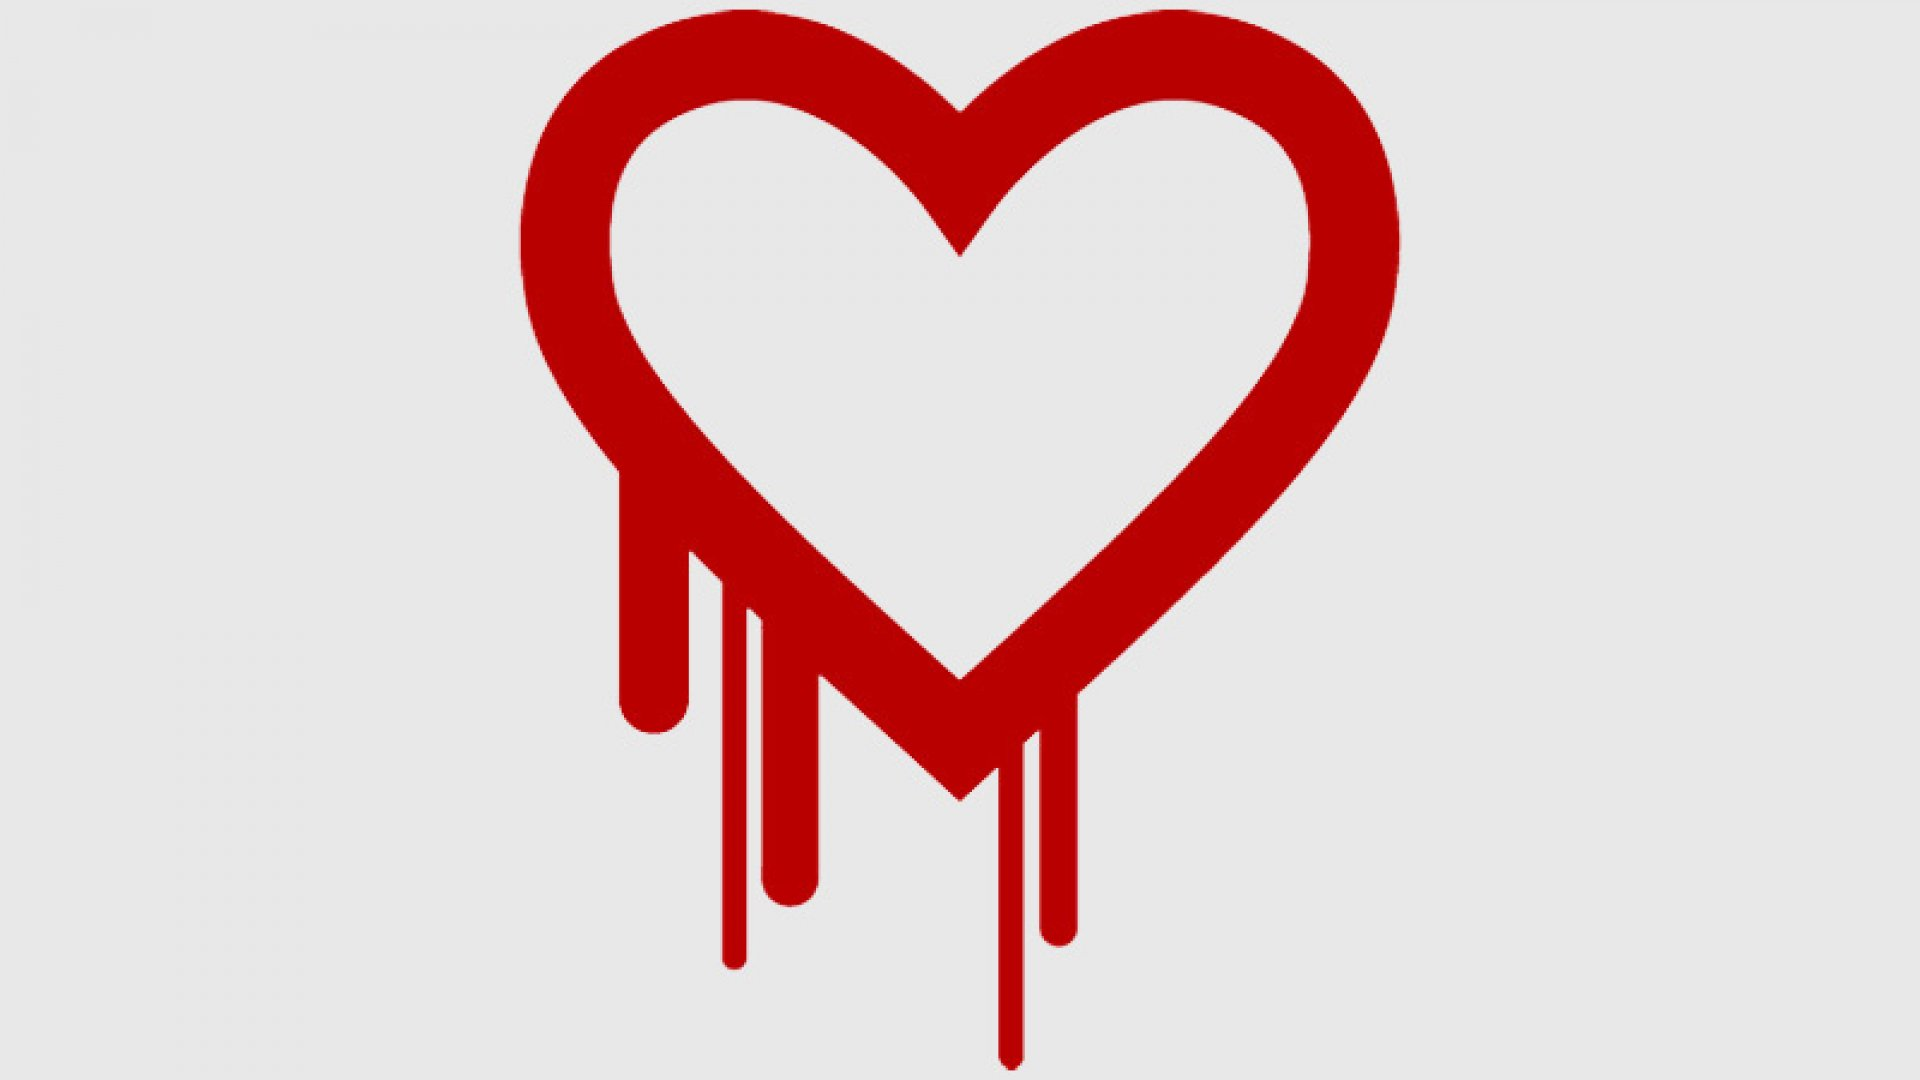 3 Cybersecurity Steps You Need to Take in Response to the 'Heartbleed' Bug